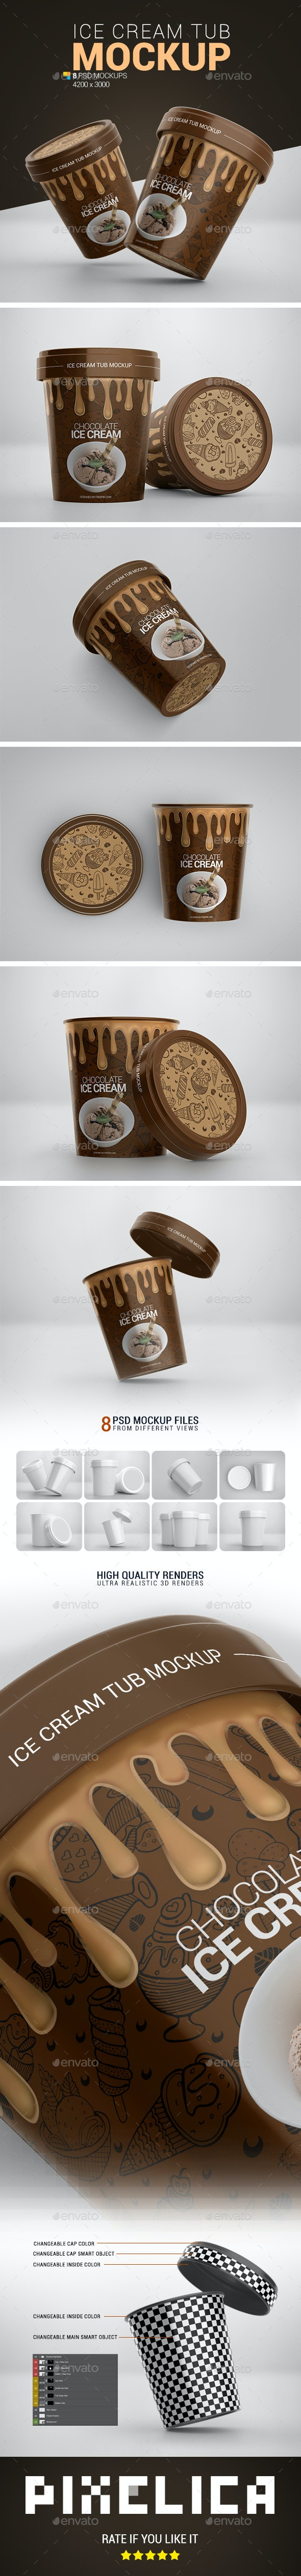 Ice Cream Tub Mockup - Food and Drink Packaging